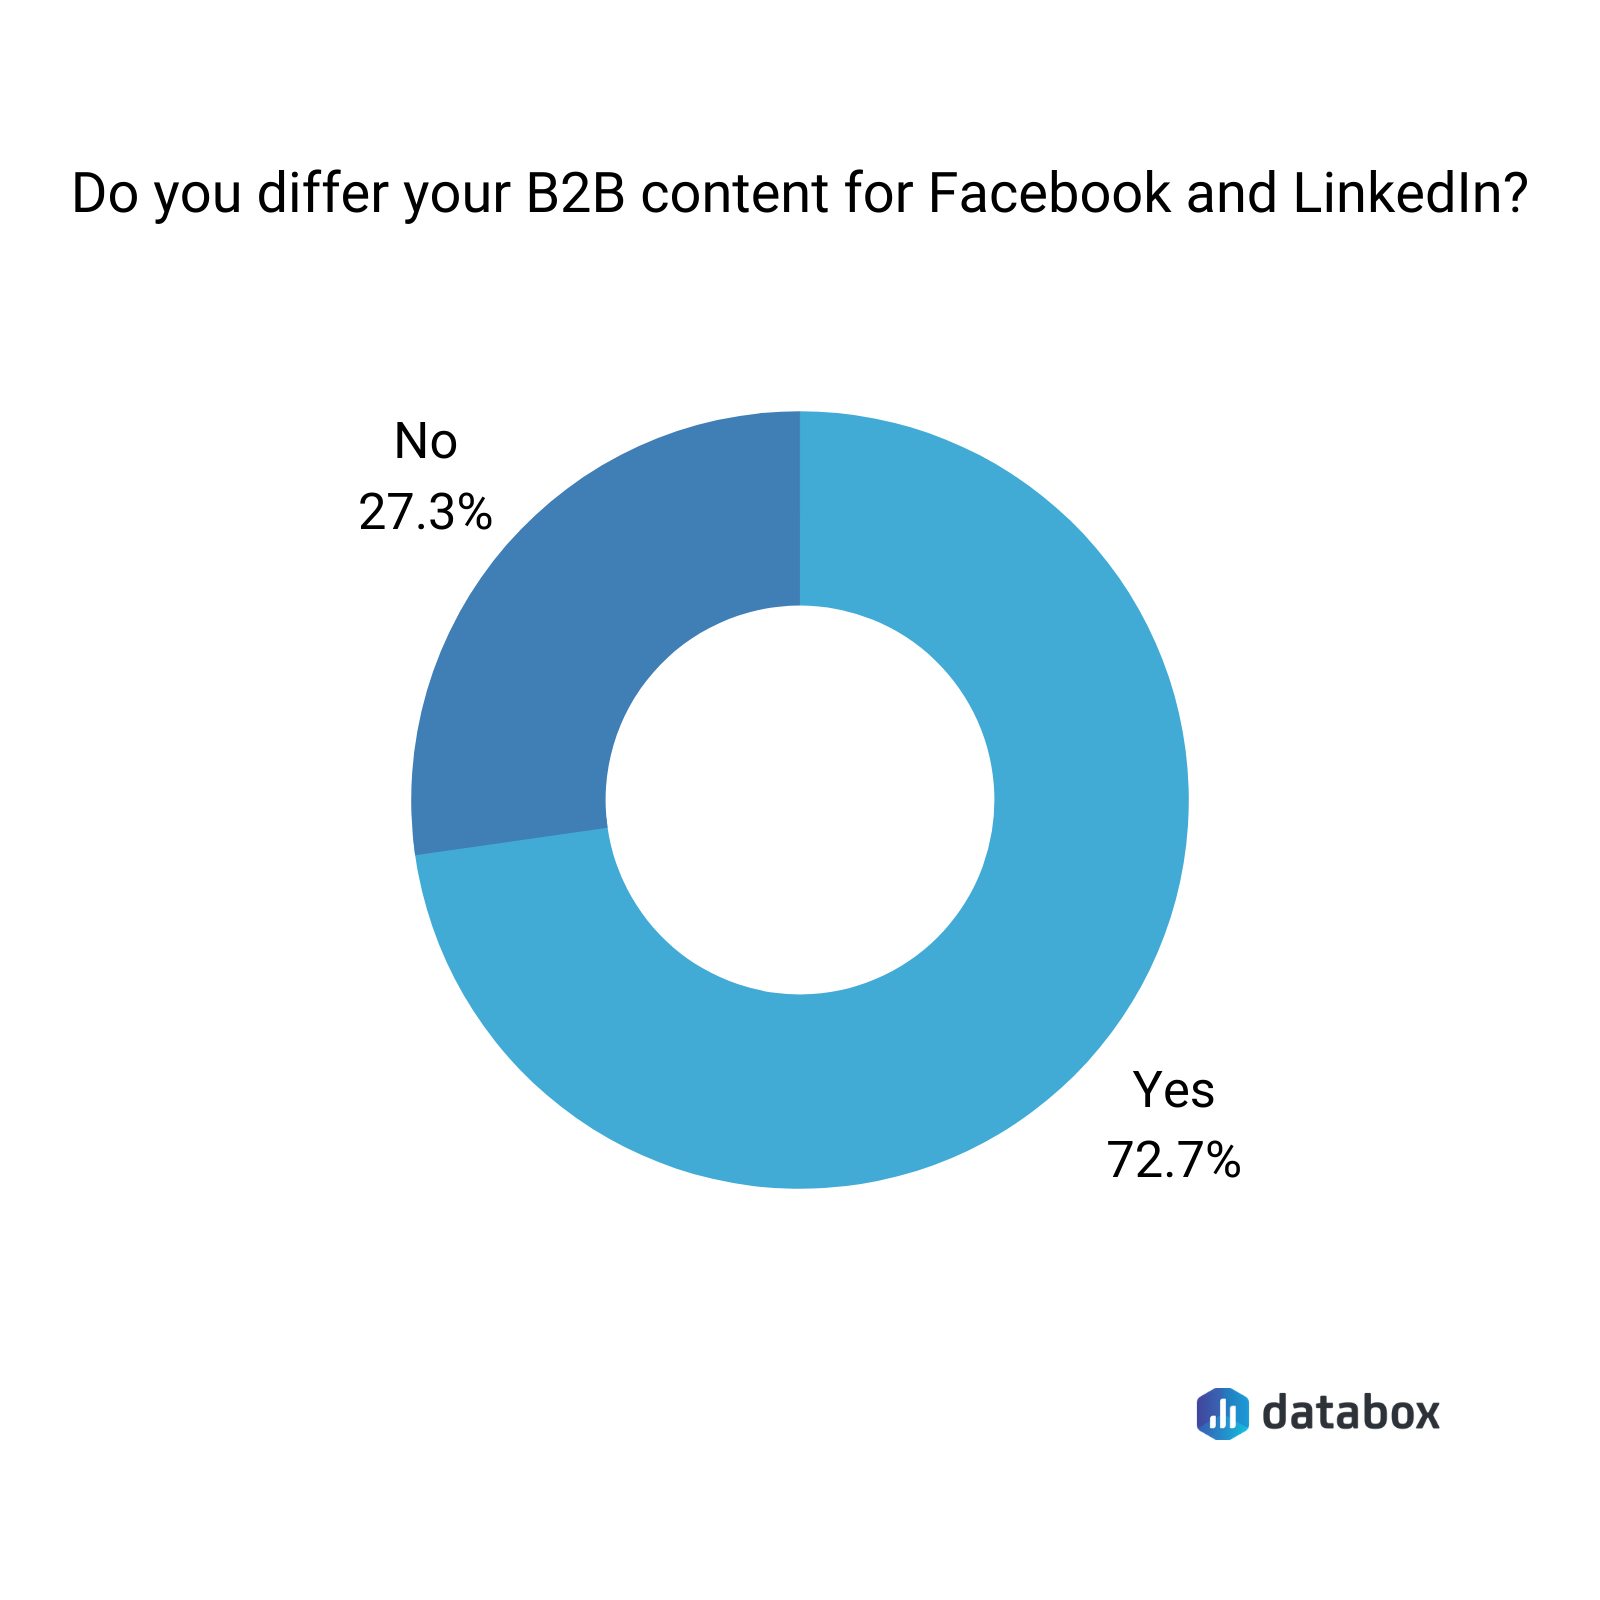 Do you differ your B2B content for Facebook and LinkedIn?